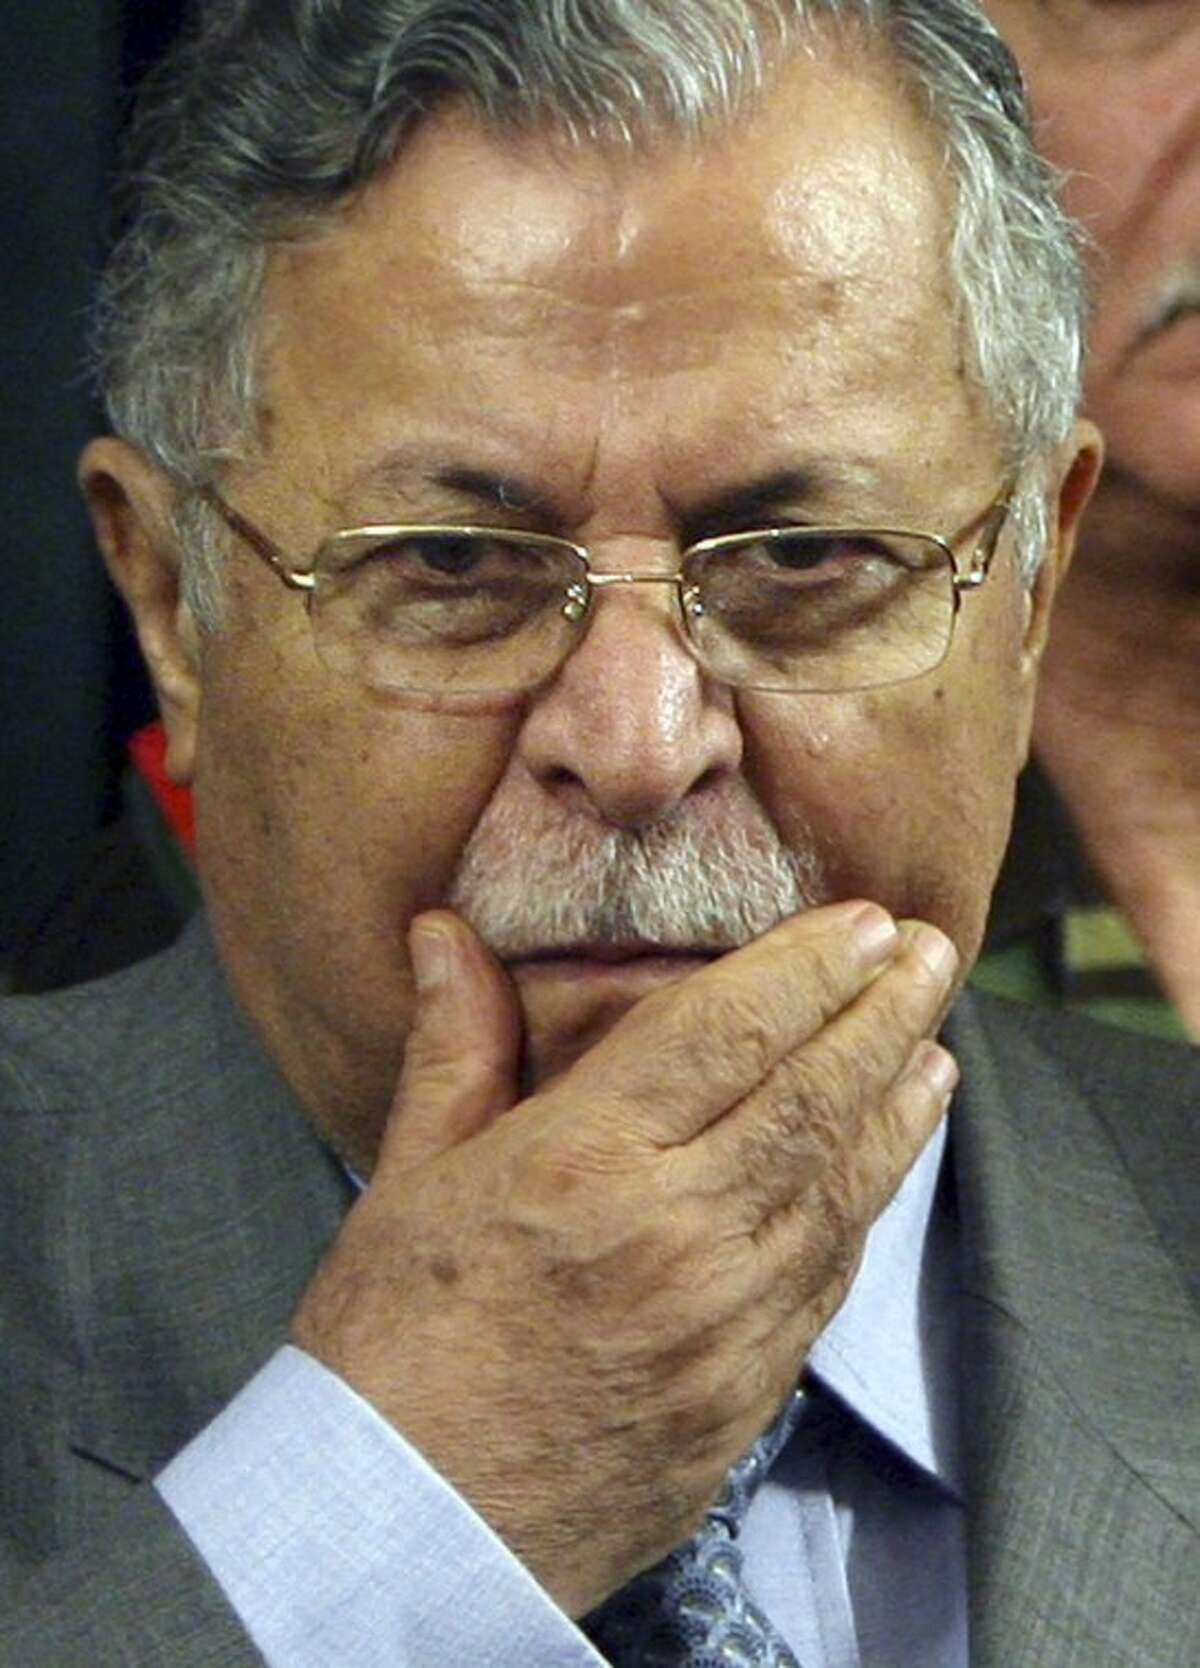 FILE - In this Aug 2, 2006 file photo, Iraq's President Jalal Talabani pauses after announcing new security plans in Baghdad, Iraq. The office of Iraqi President Jalal Talabani said Tuesday he has been admitted to the hospital for treatment of an unspecified health problem. (AP Photo/Khalid Mohammed, File)